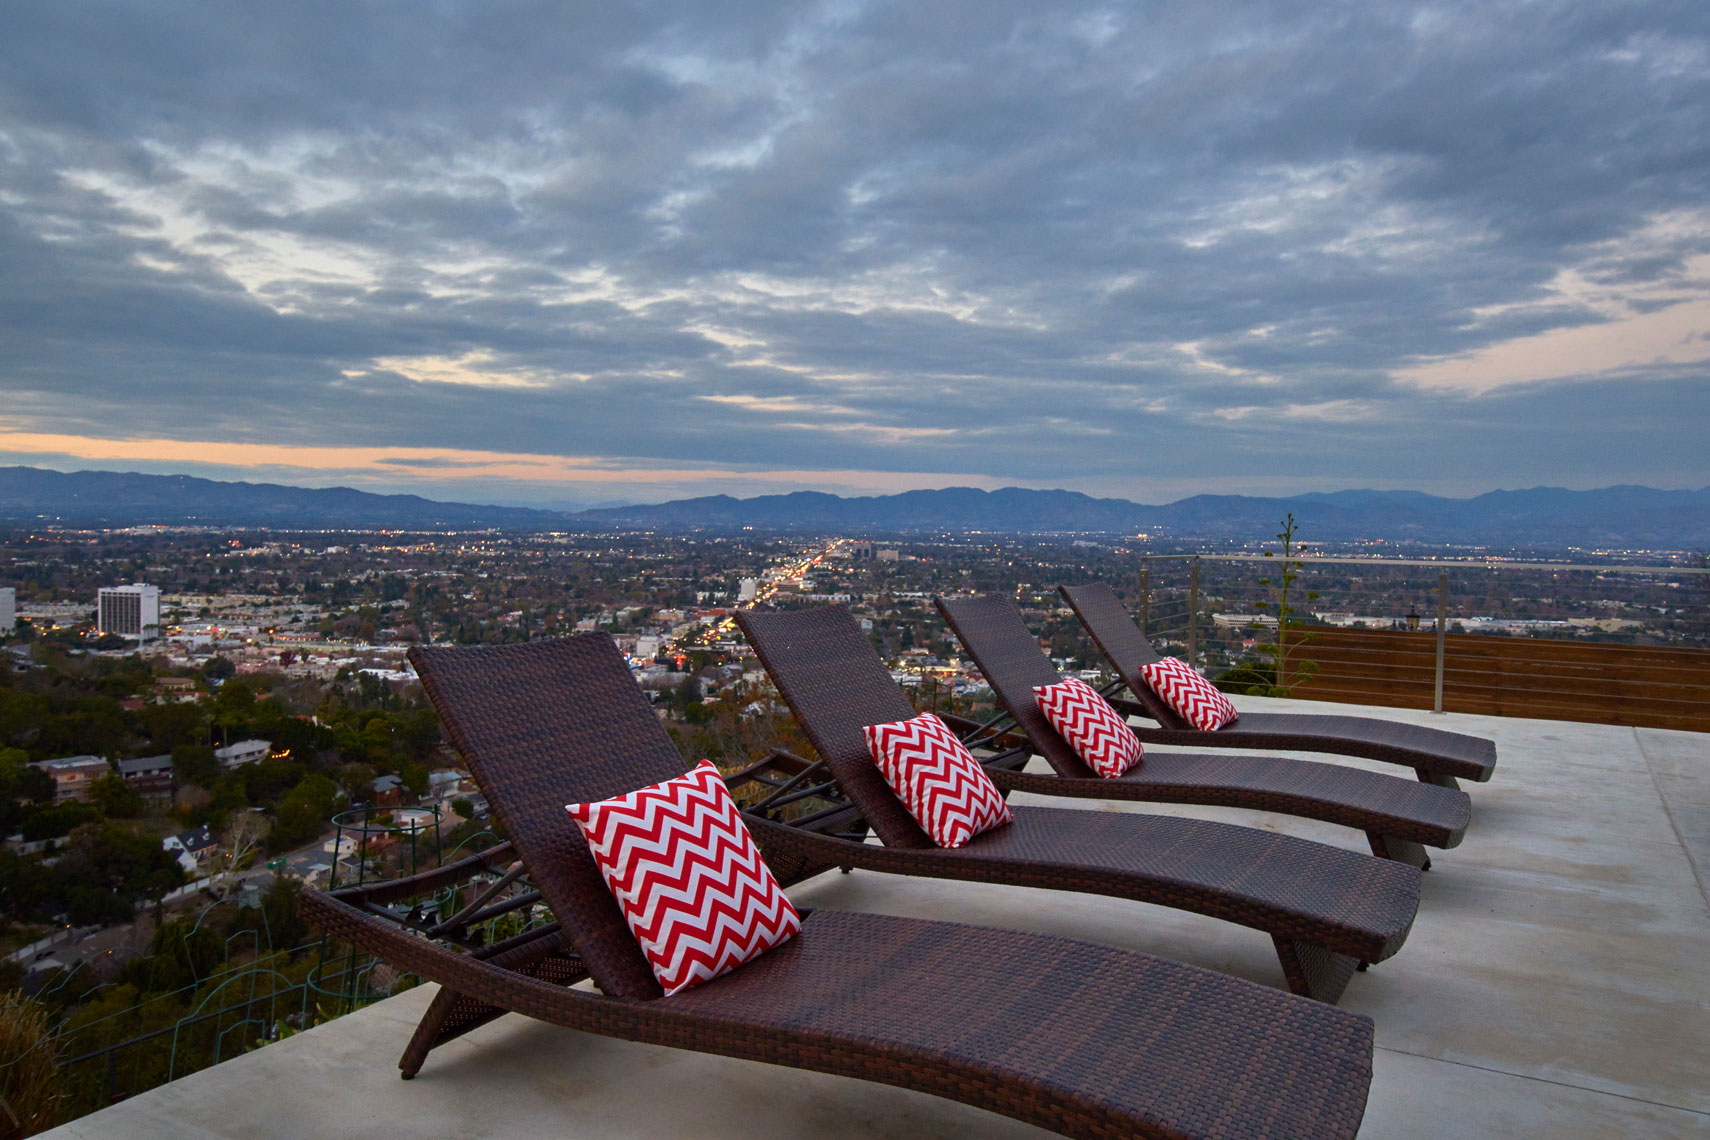 Twilight-view-of-San-Fernando-valley-from-poolside-lounge-chairs